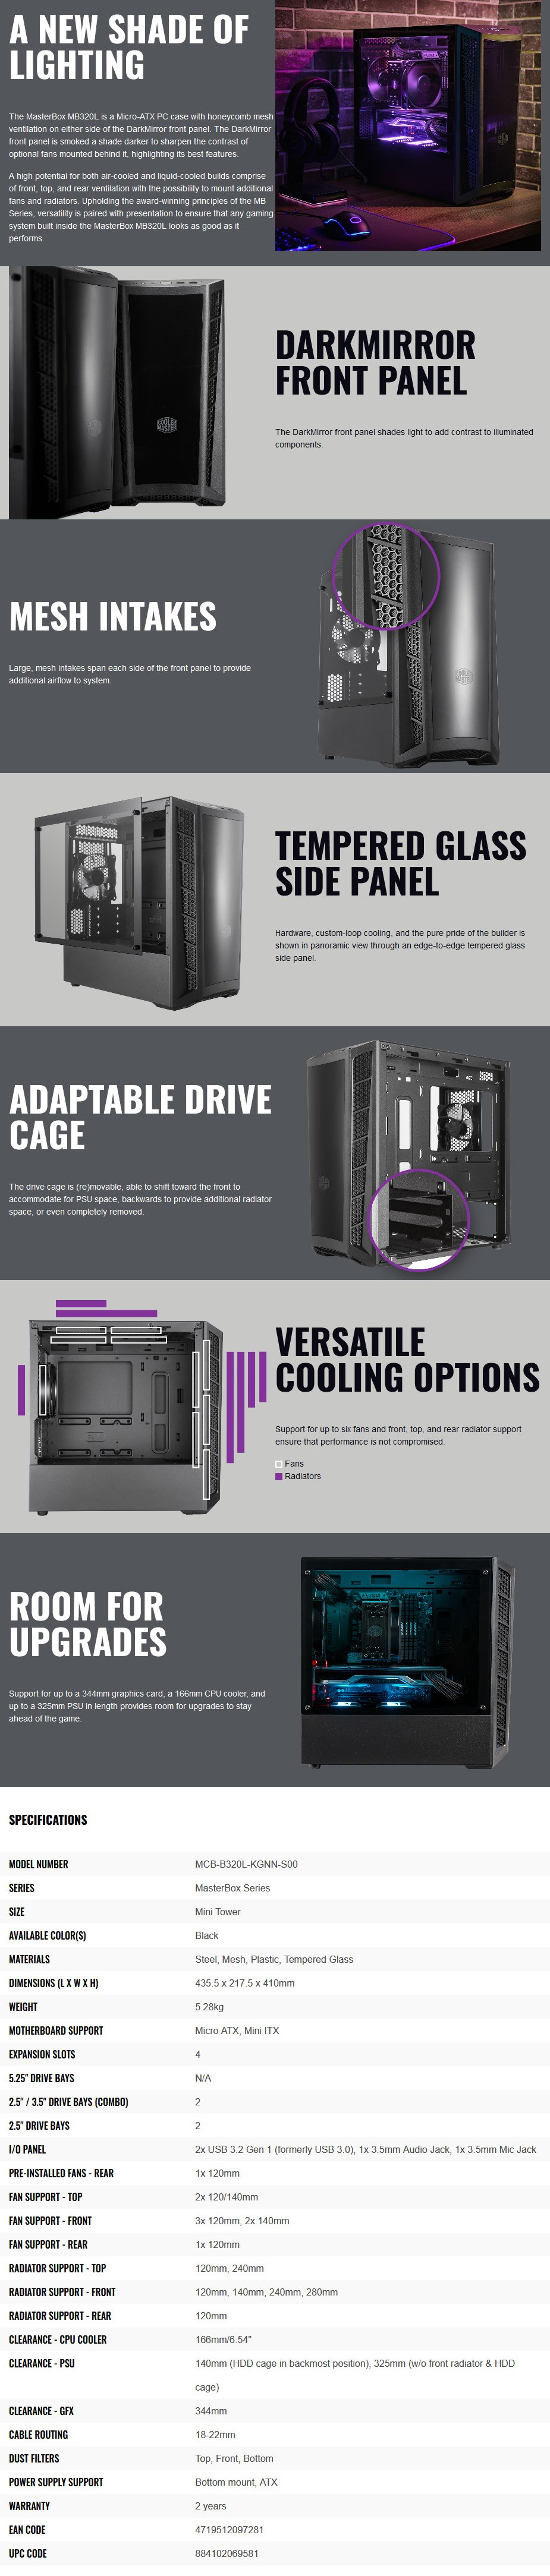 cooler-master-masterbox-mb320l-tempered-glass-microatx-case-ac41308-8.jpg